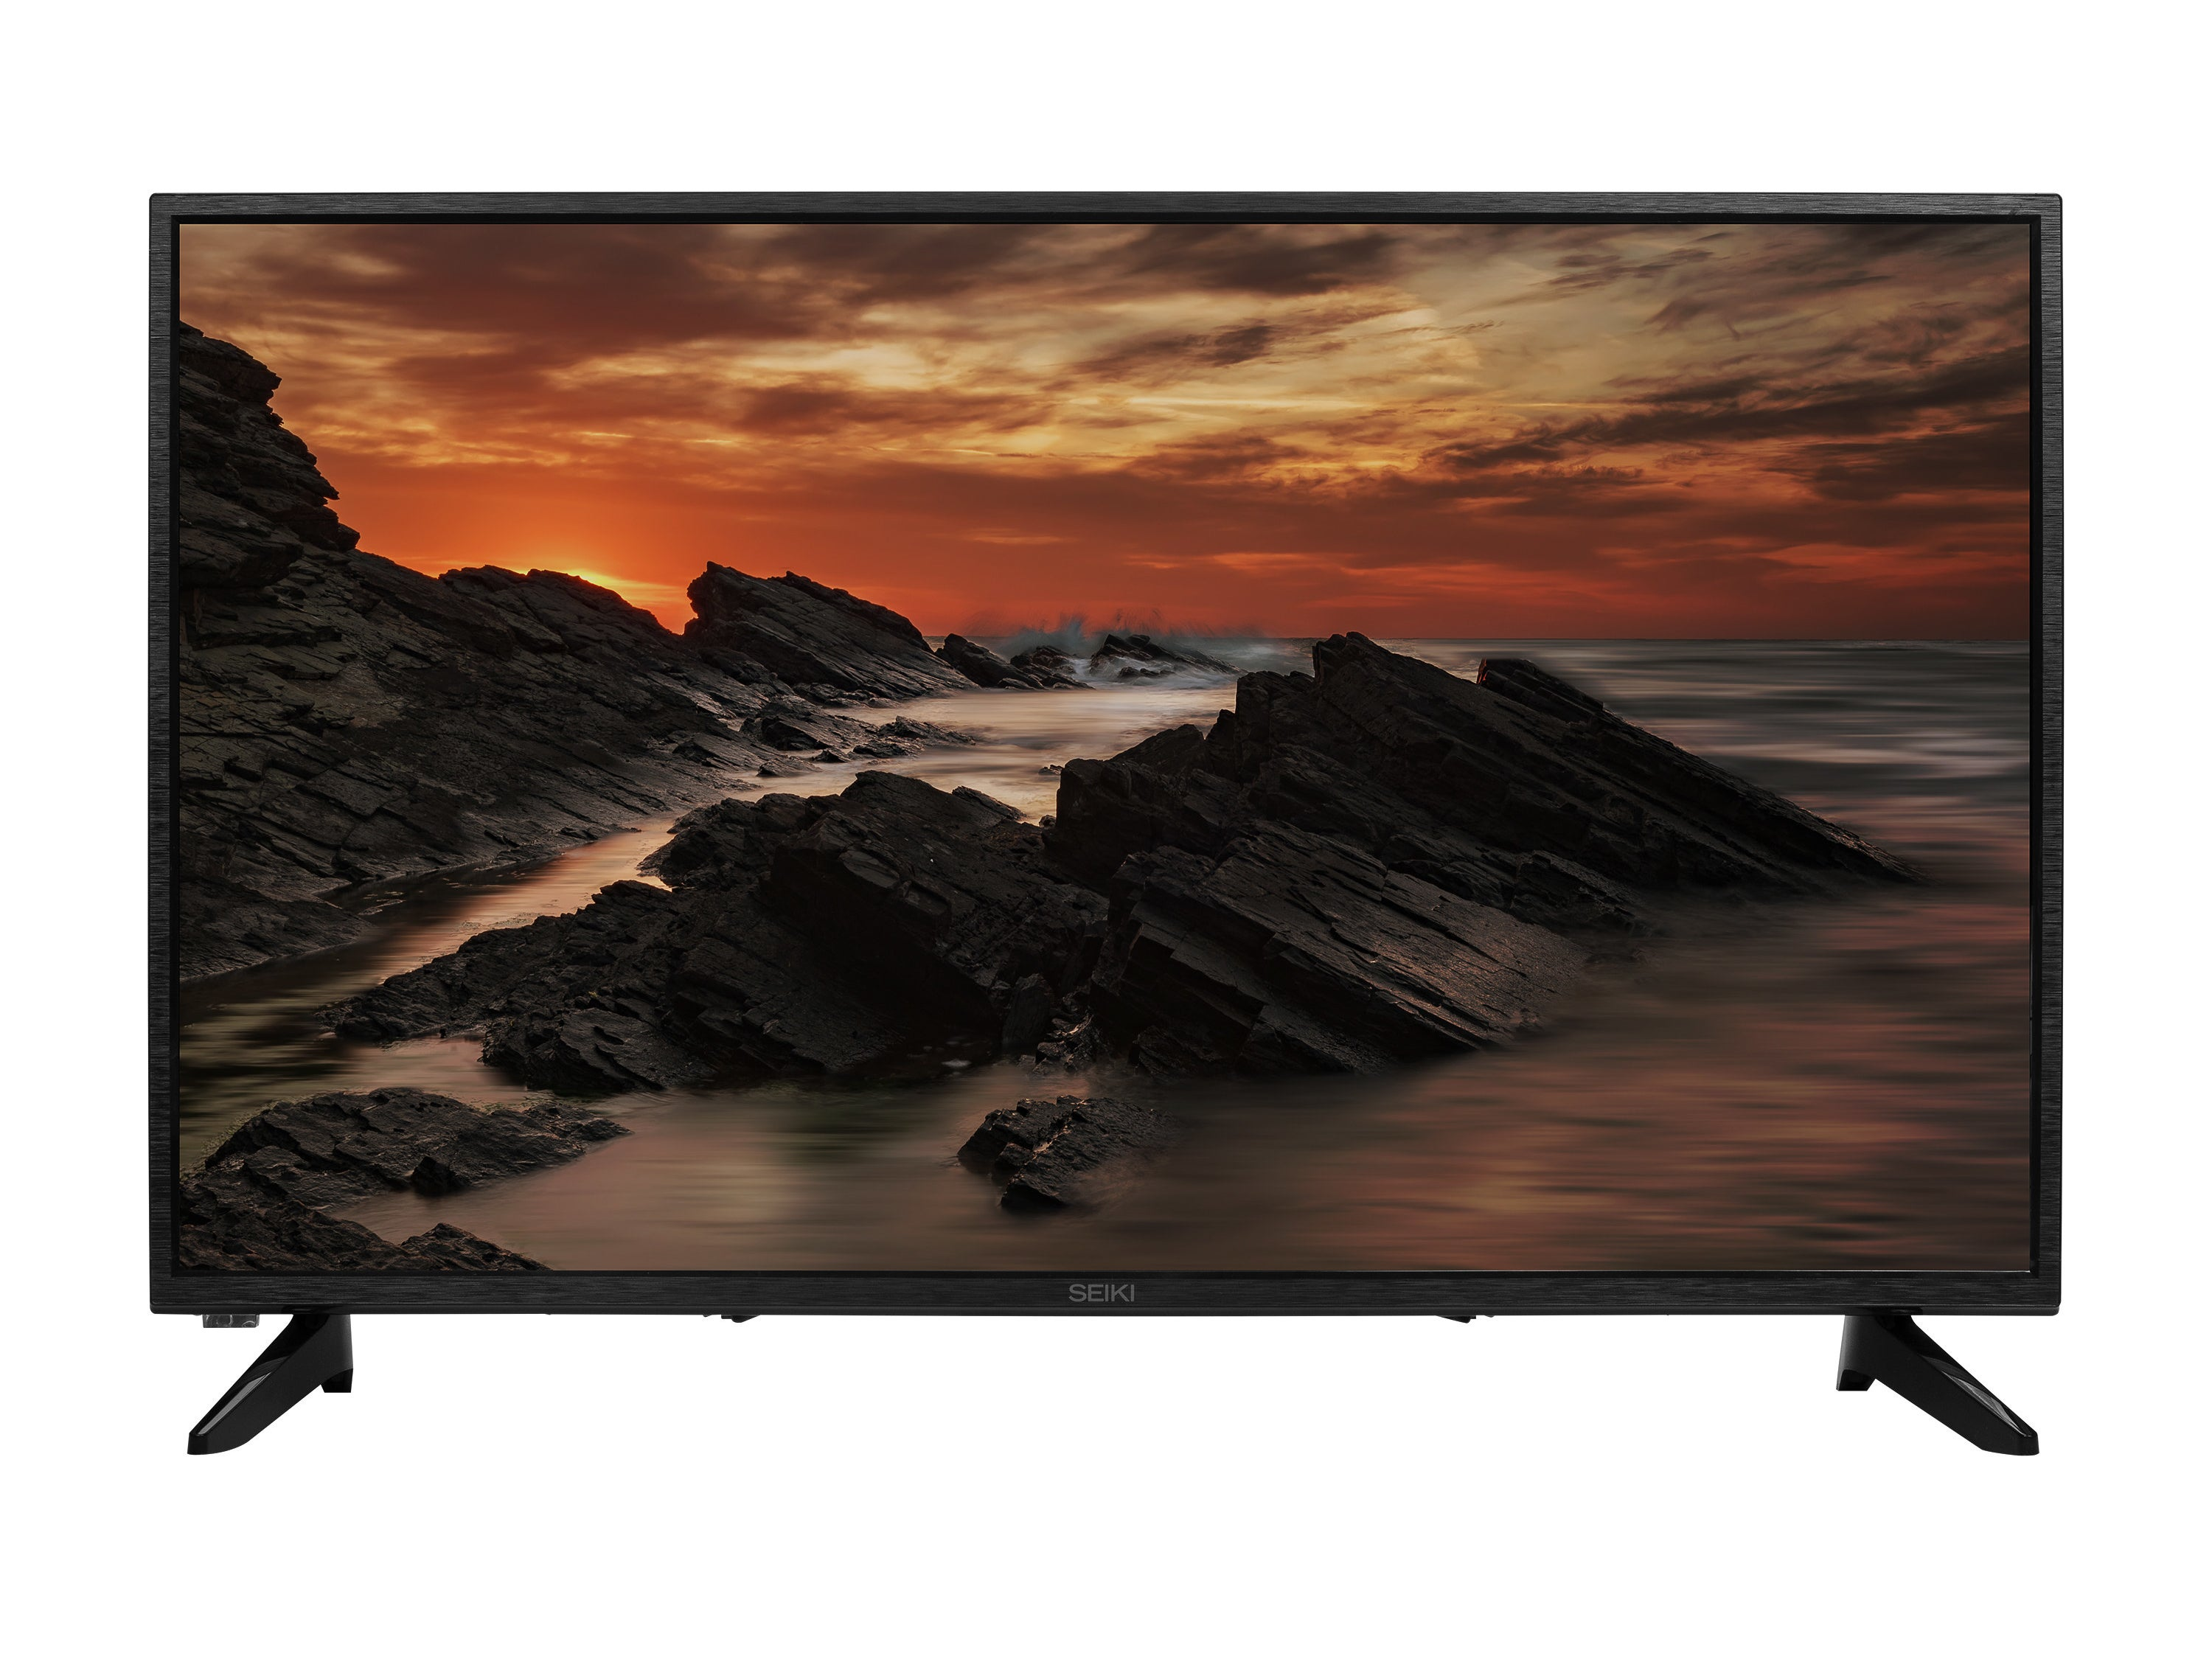 LED television with a nature screen saver